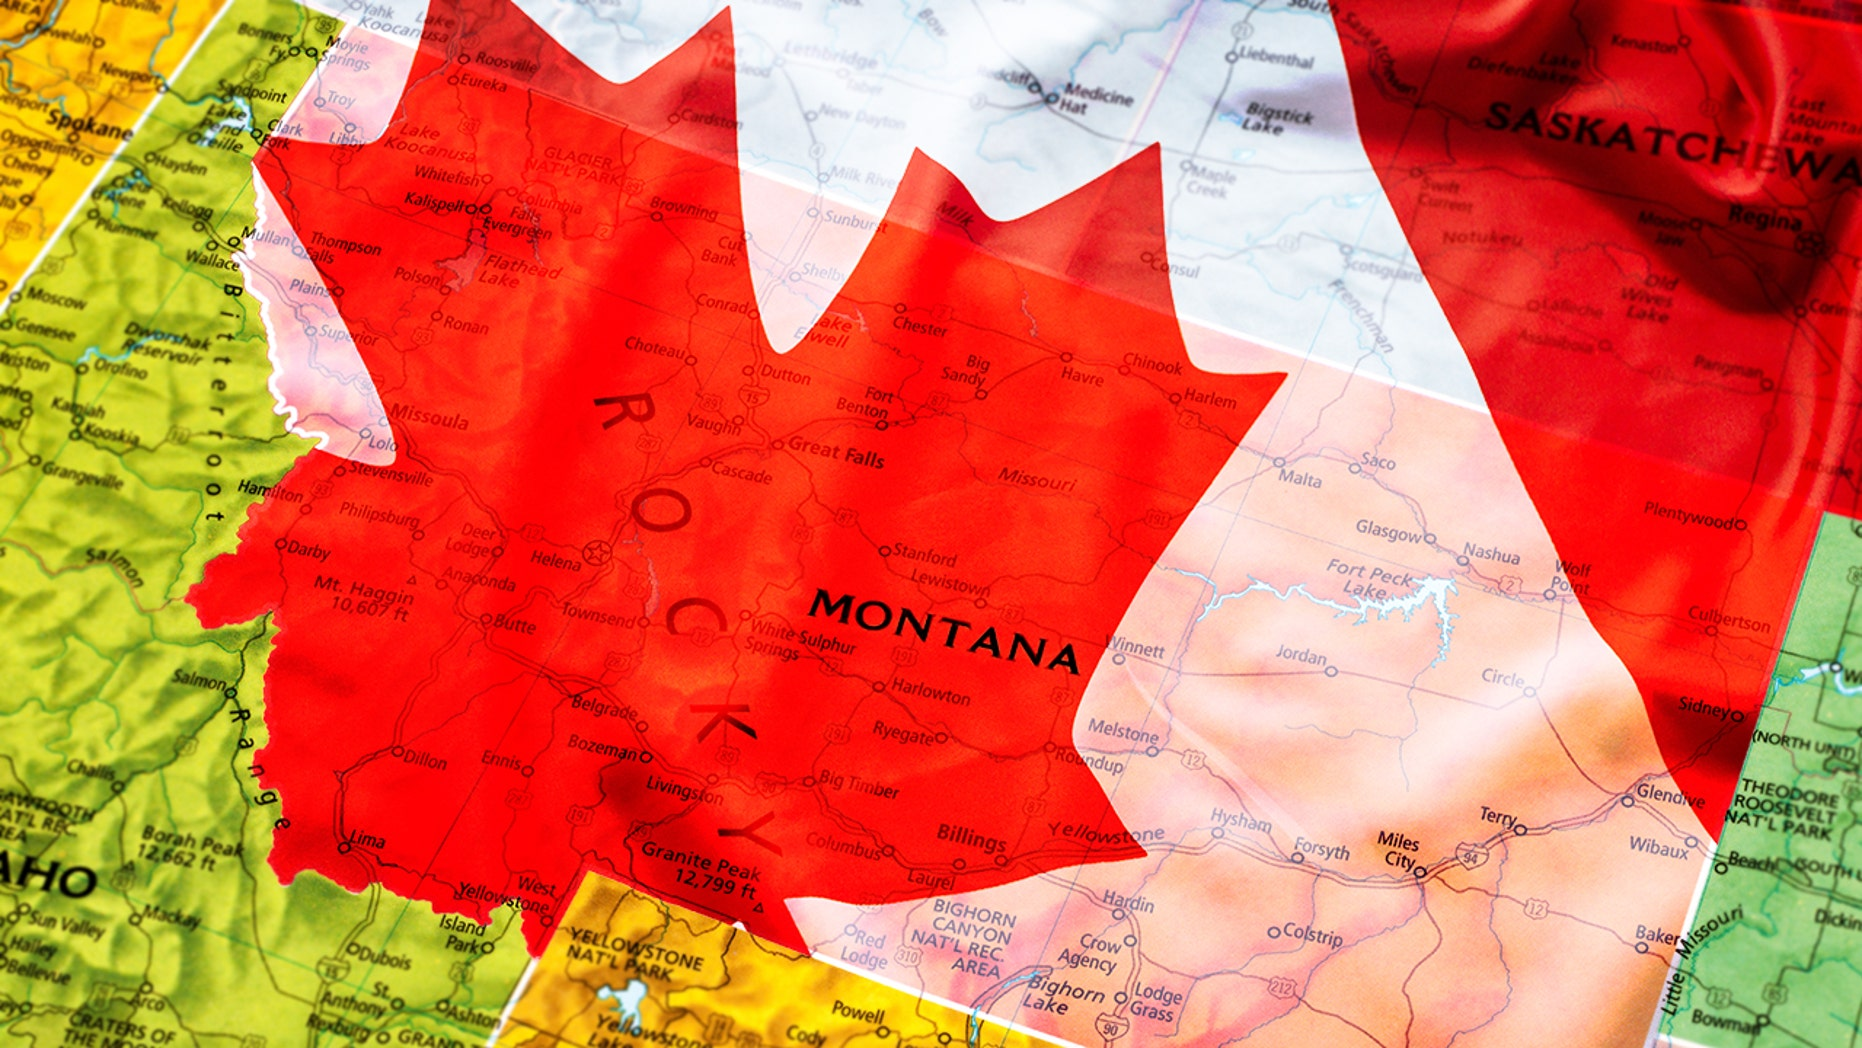 Petition To Sell Montana To Canada For $1 Trillion Goes Viral